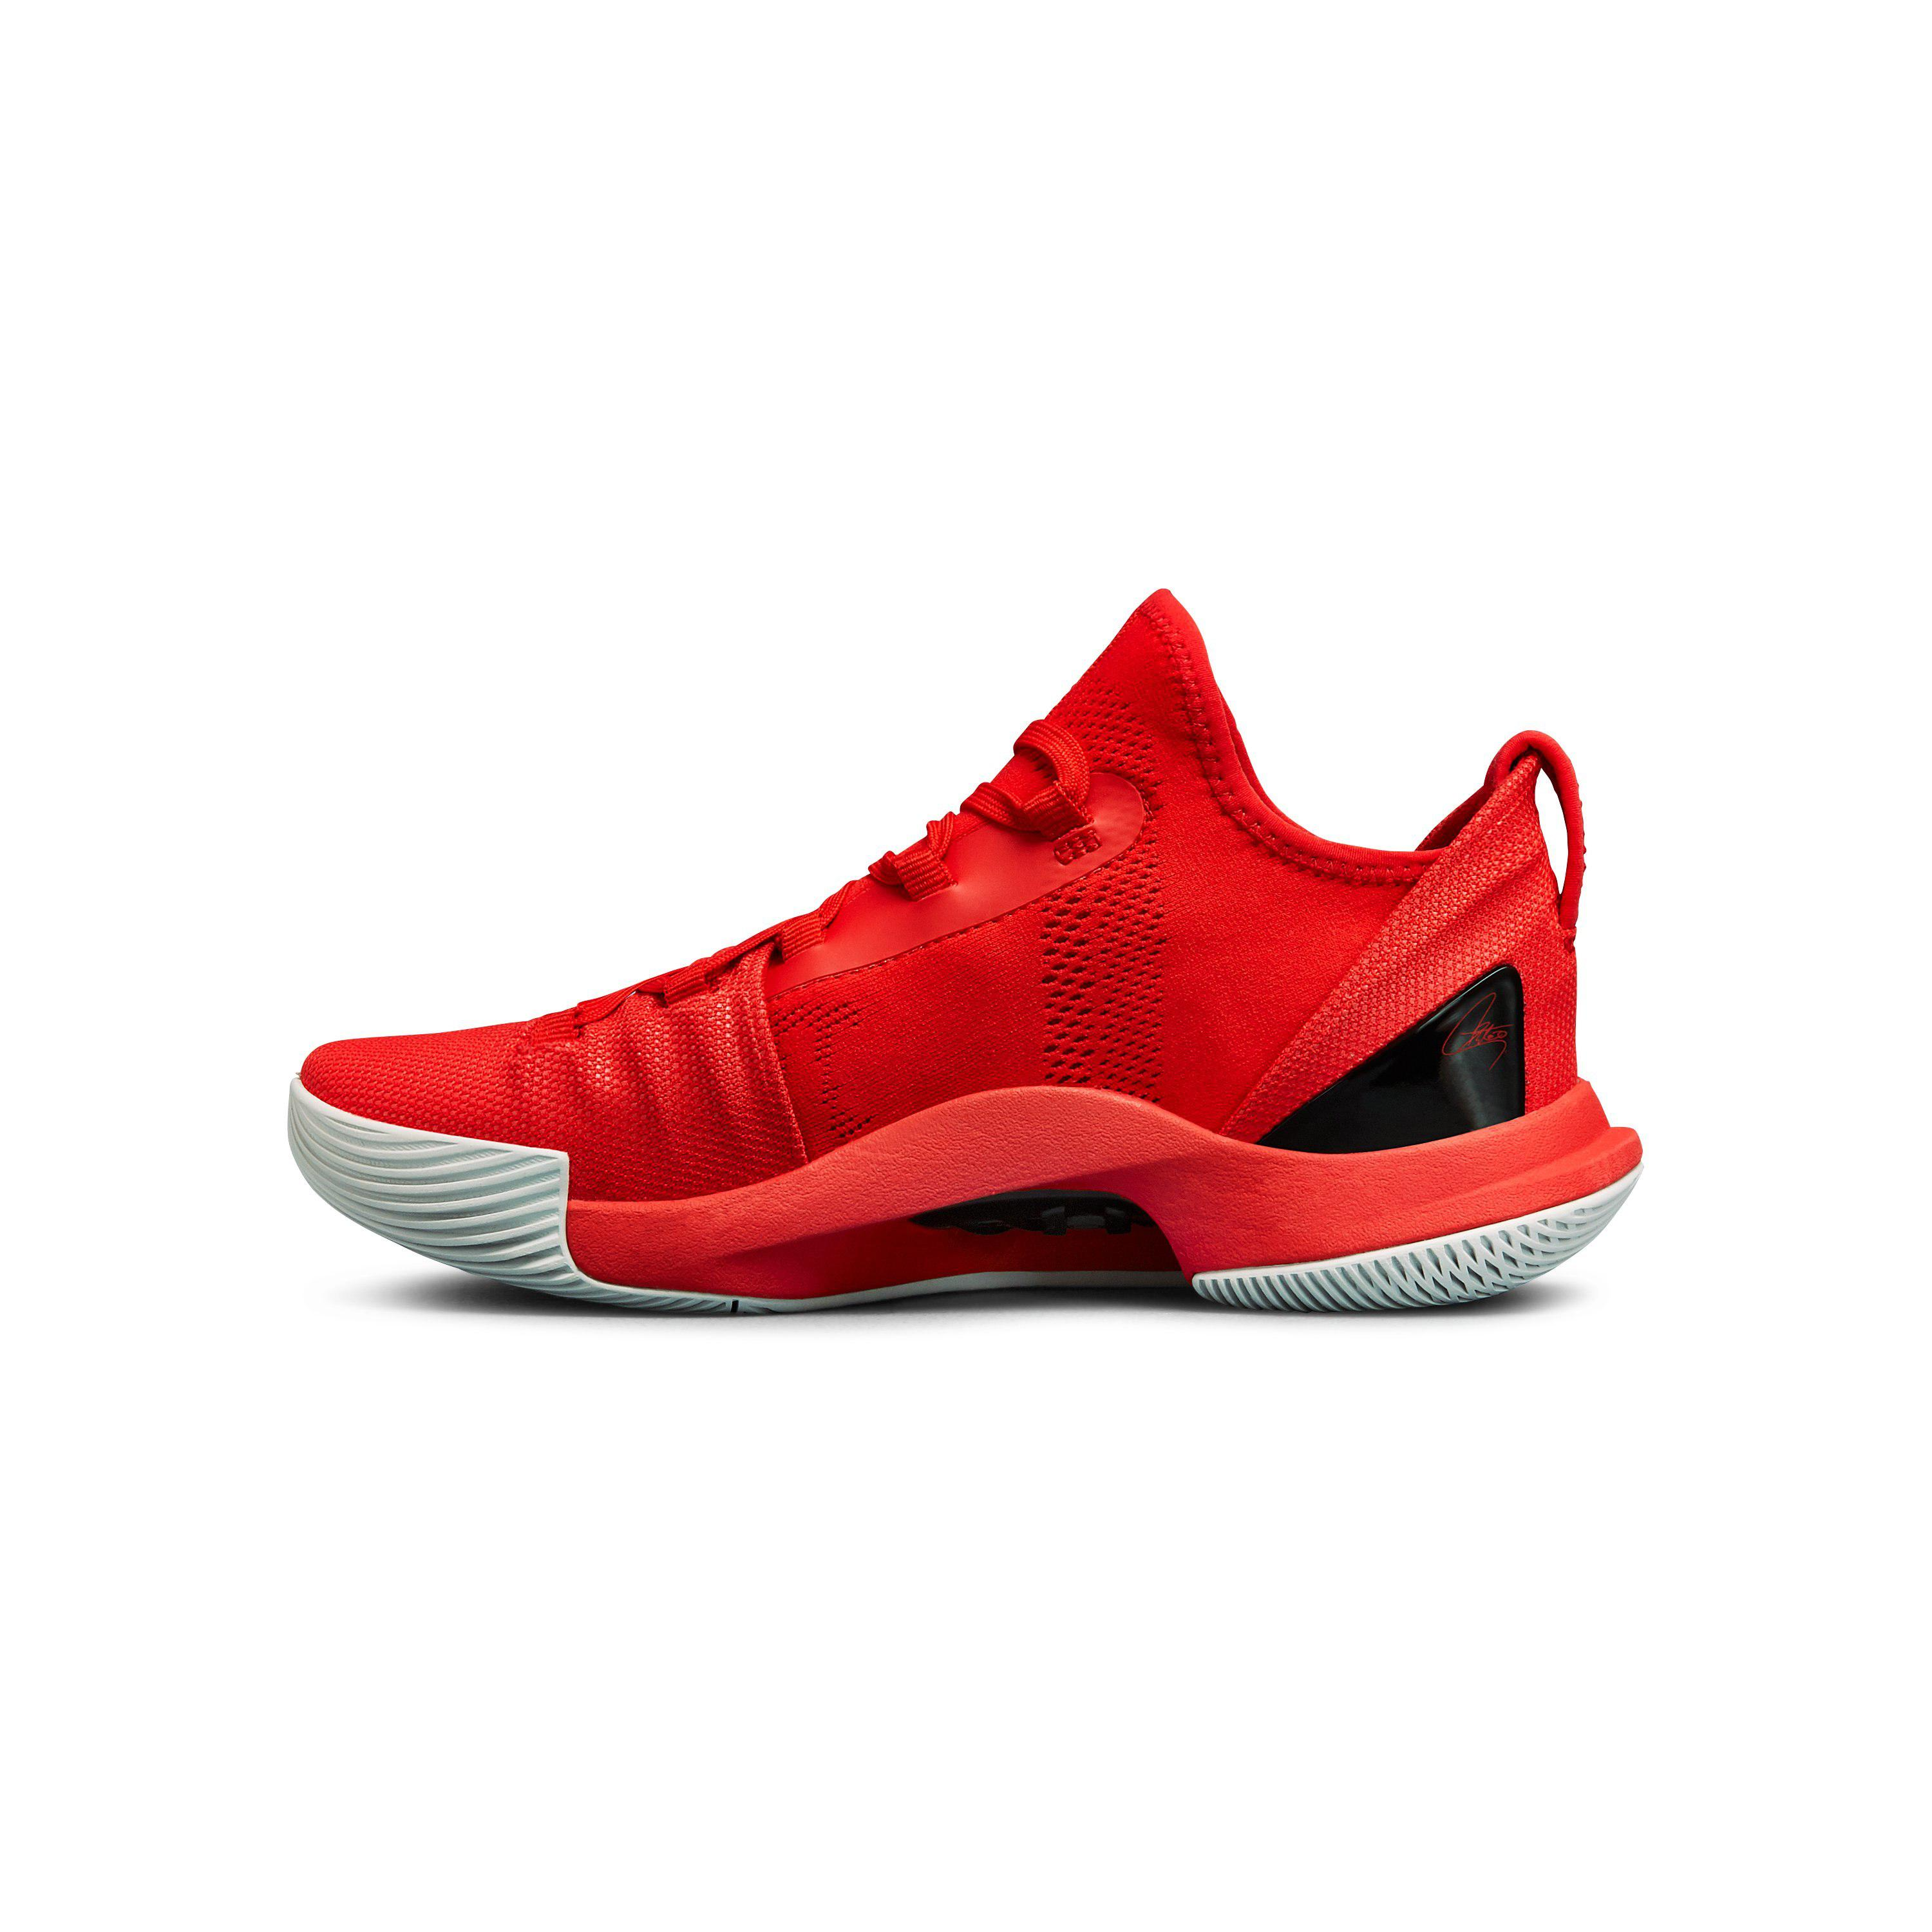 reputable site 08150 96d9a Under Armour Red Grade School Ua Curry 5 Basketball Shoes for men